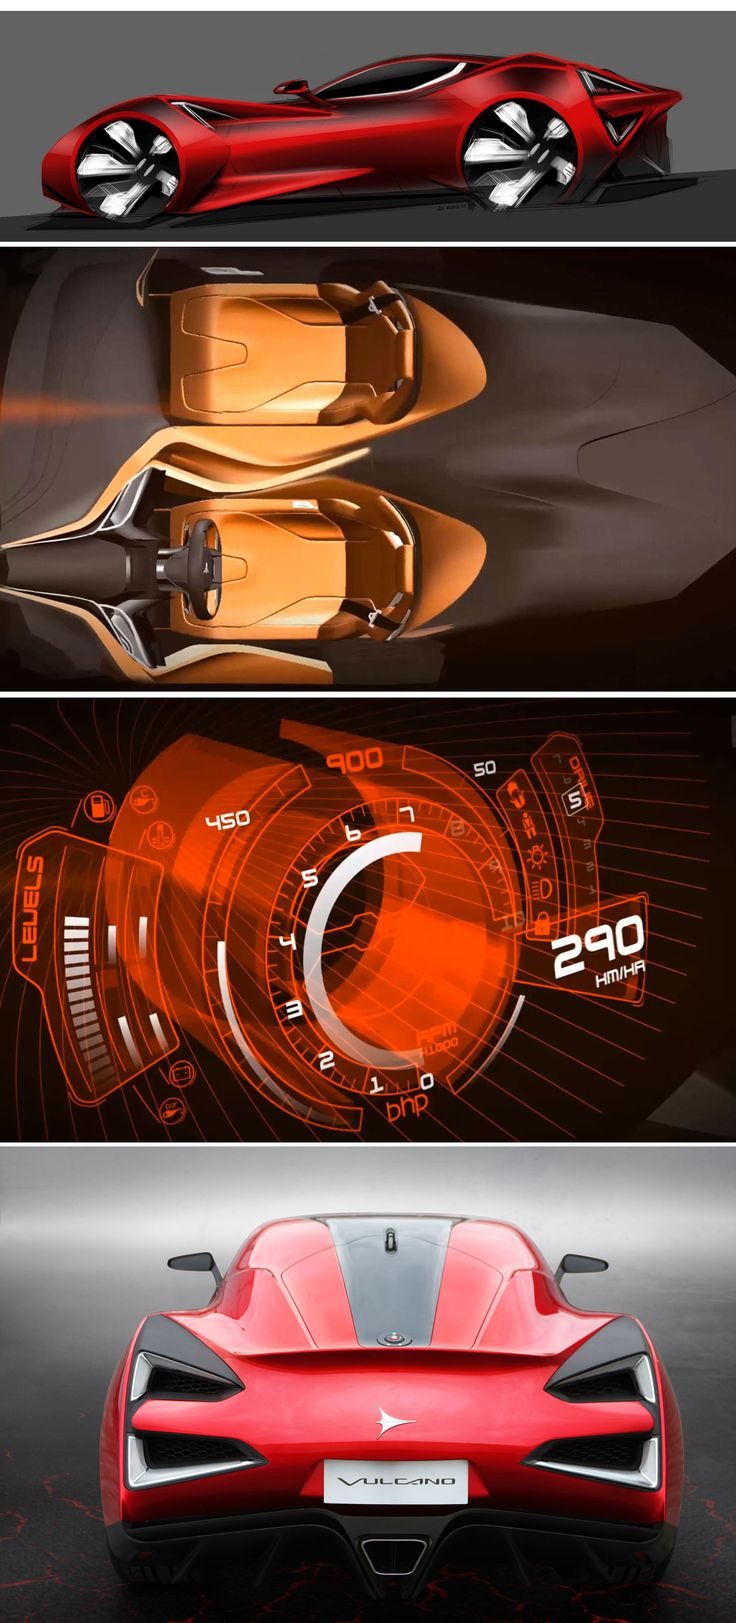 Icona Vulcano - Great supercar design sketches & 3D